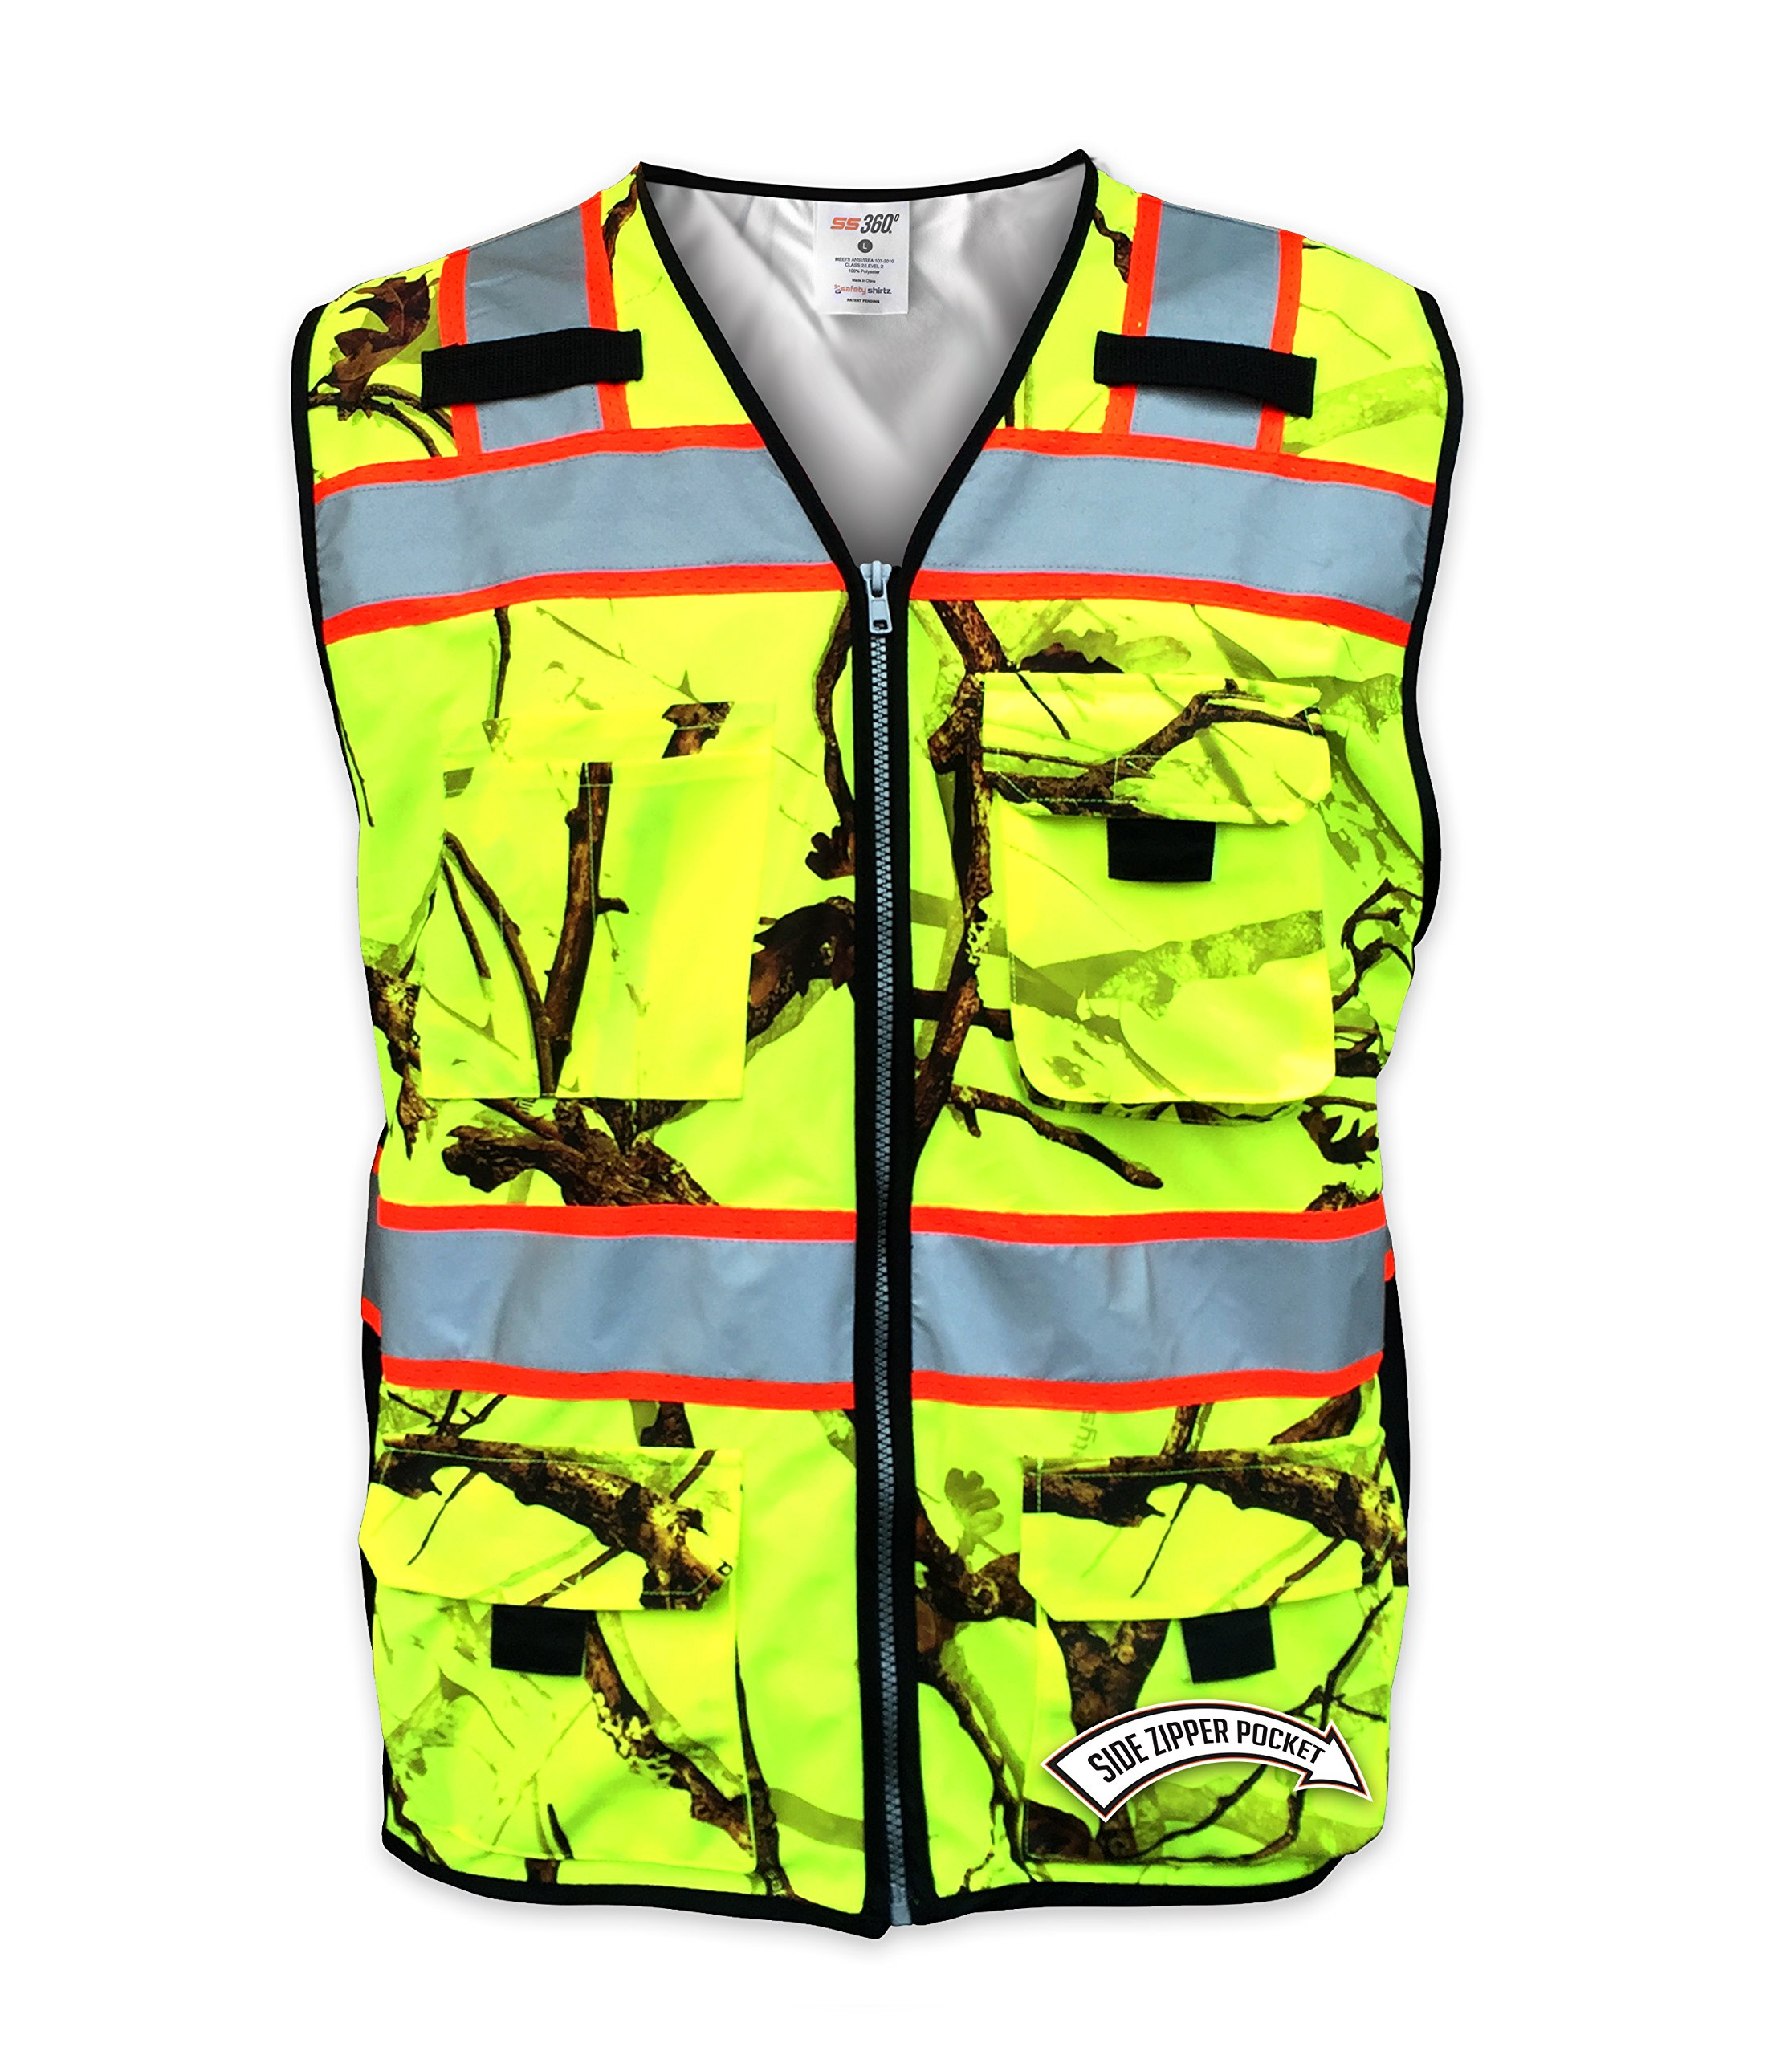 SafetyShirtz SS360 Backwoods Camo ANSI Class 2 Safety Vest XL by SafetyShirtz